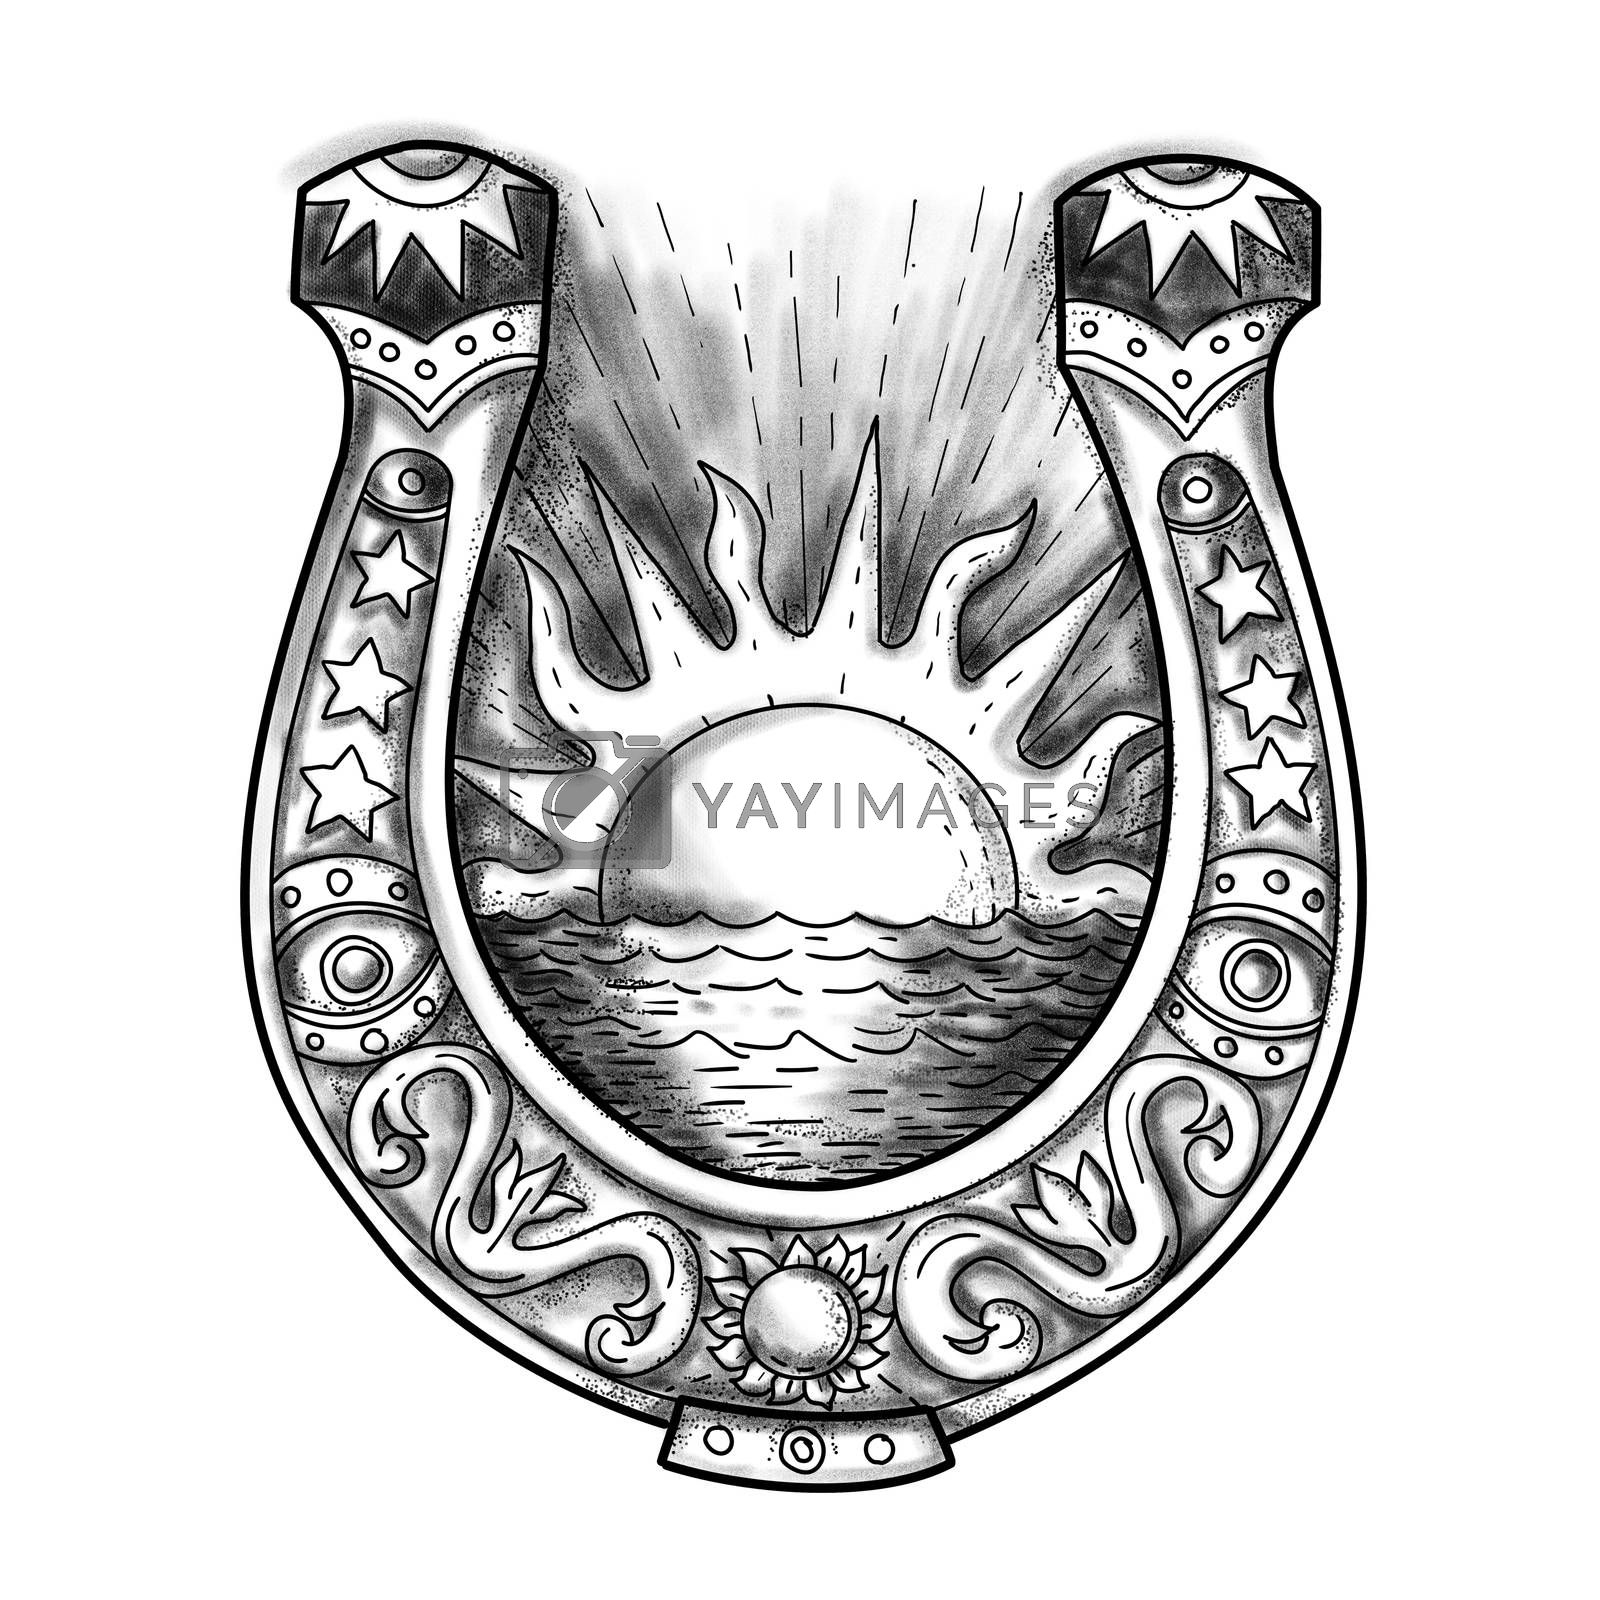 Tattoo style illustration of am embellished and decorative horseshoe with shining sun and sea in the middle on isolated background.